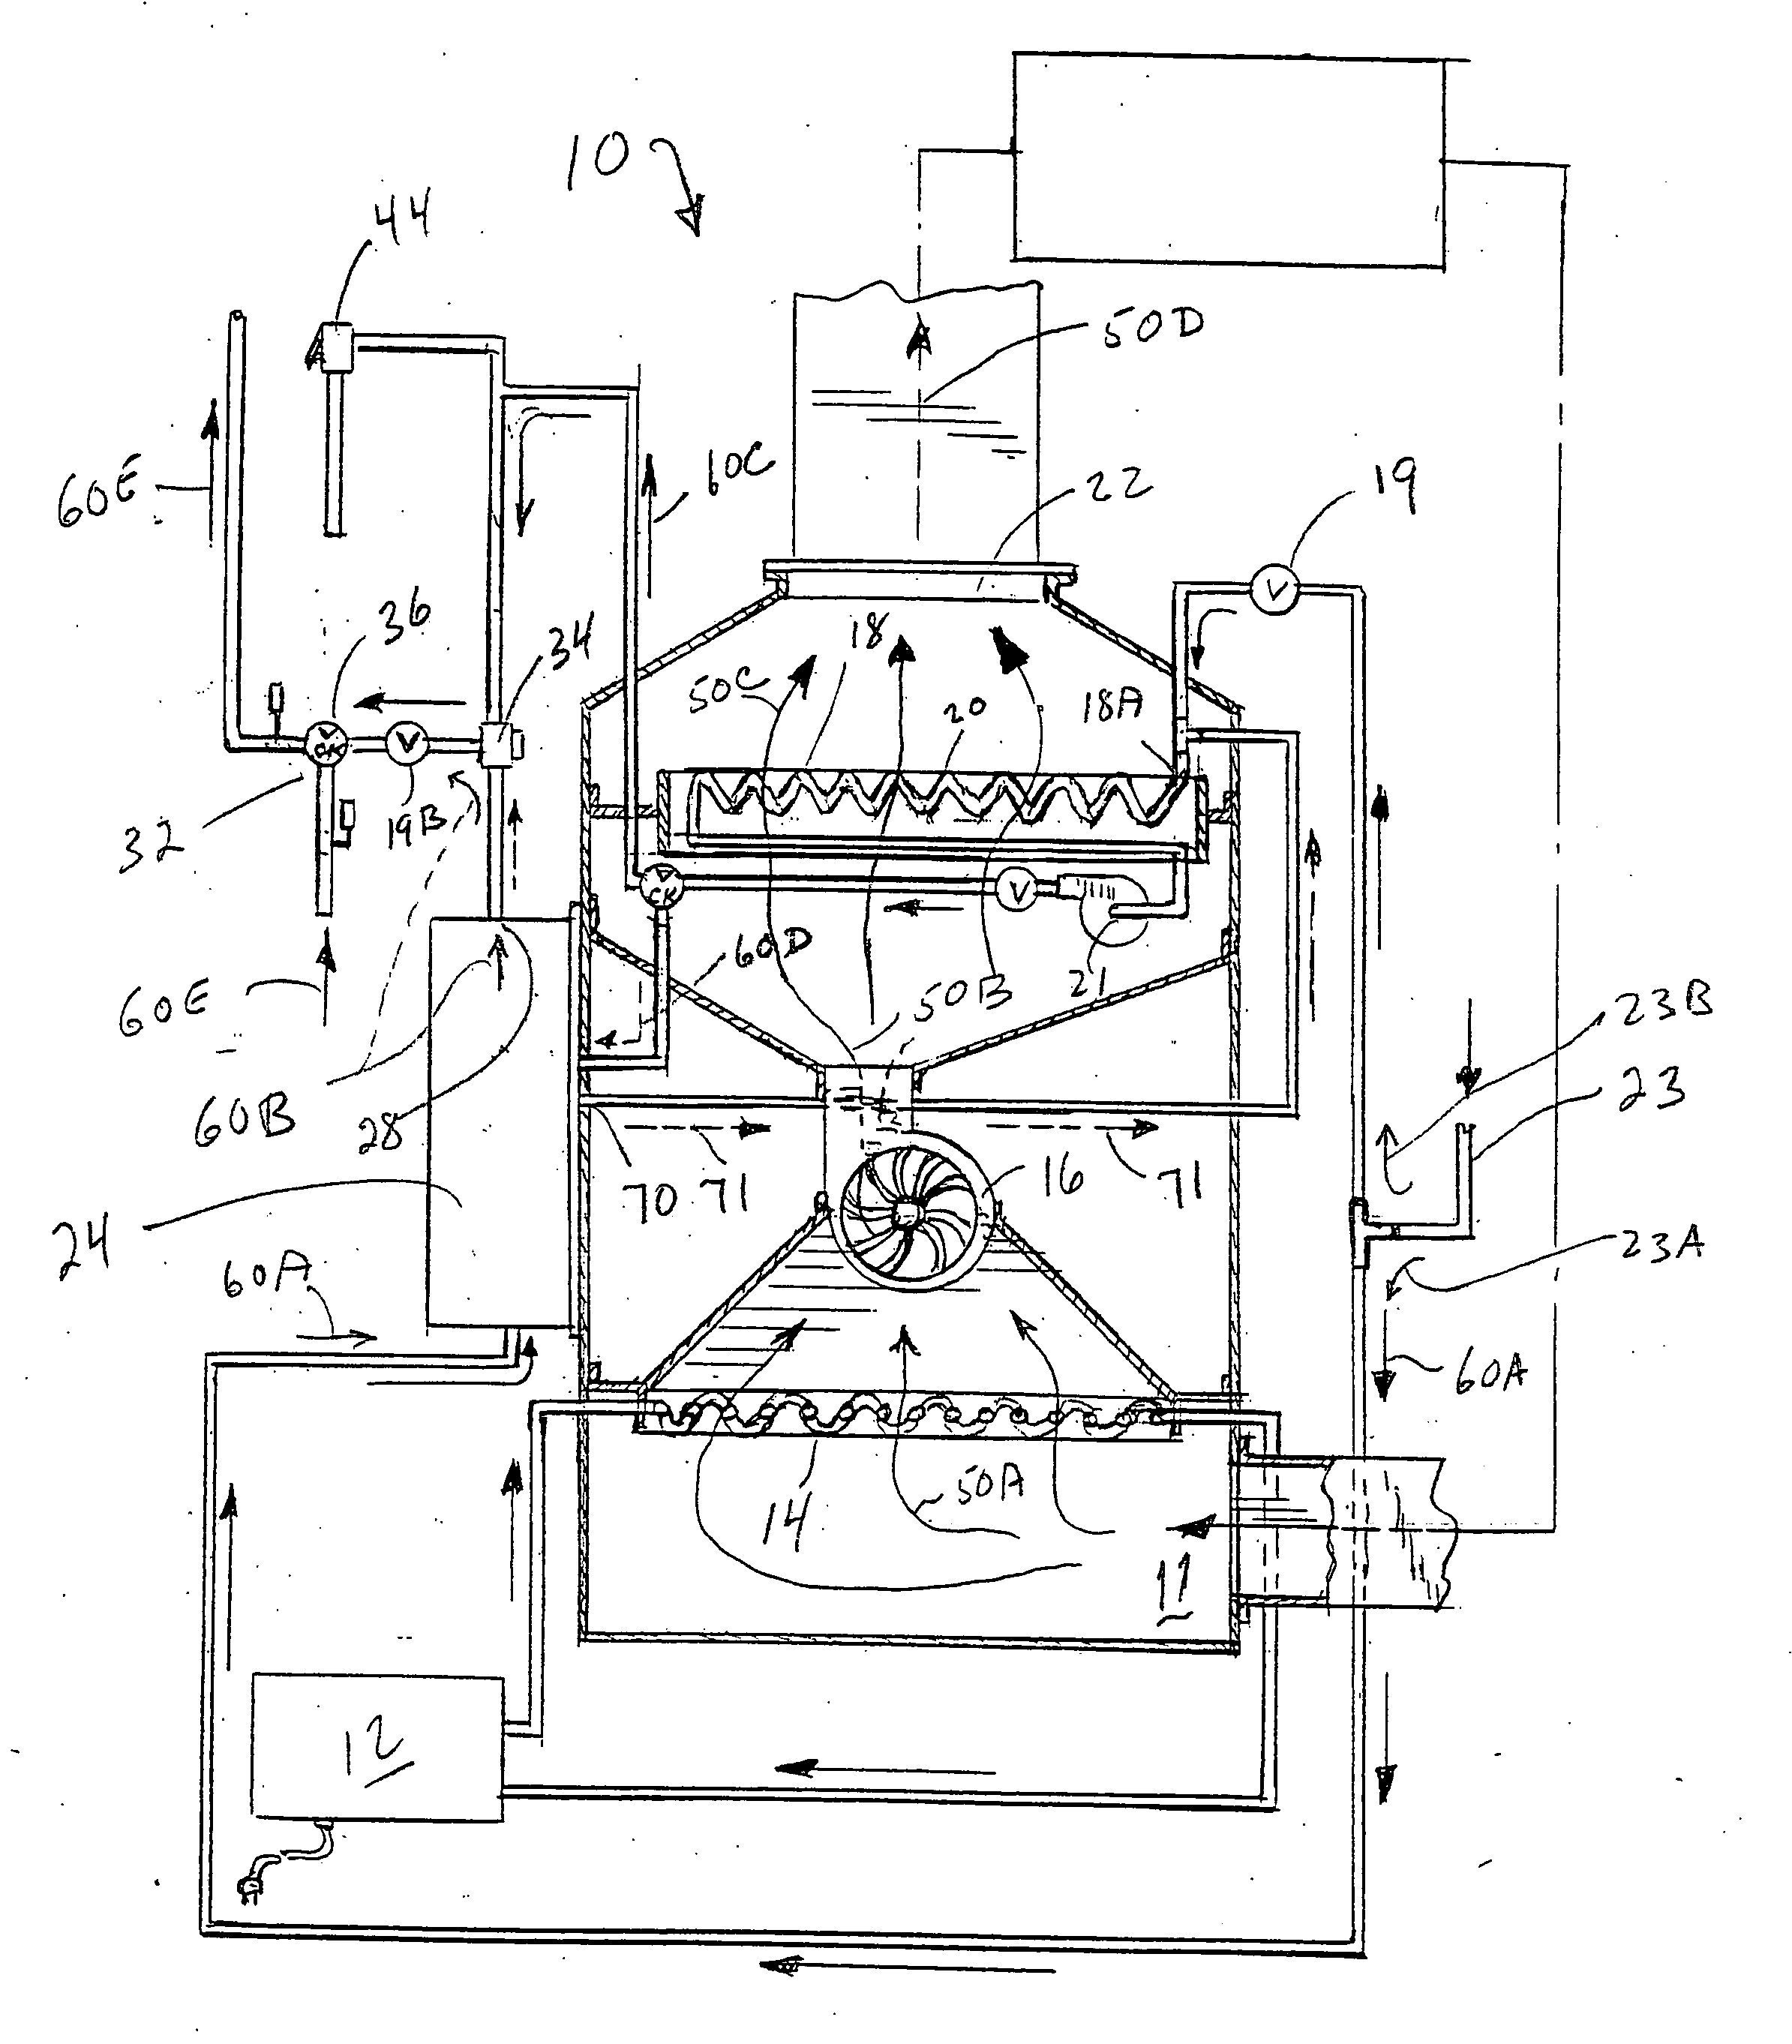 Bard Air Conditioner Wiring Diagram In Addition Hvac Thermostat Wiring